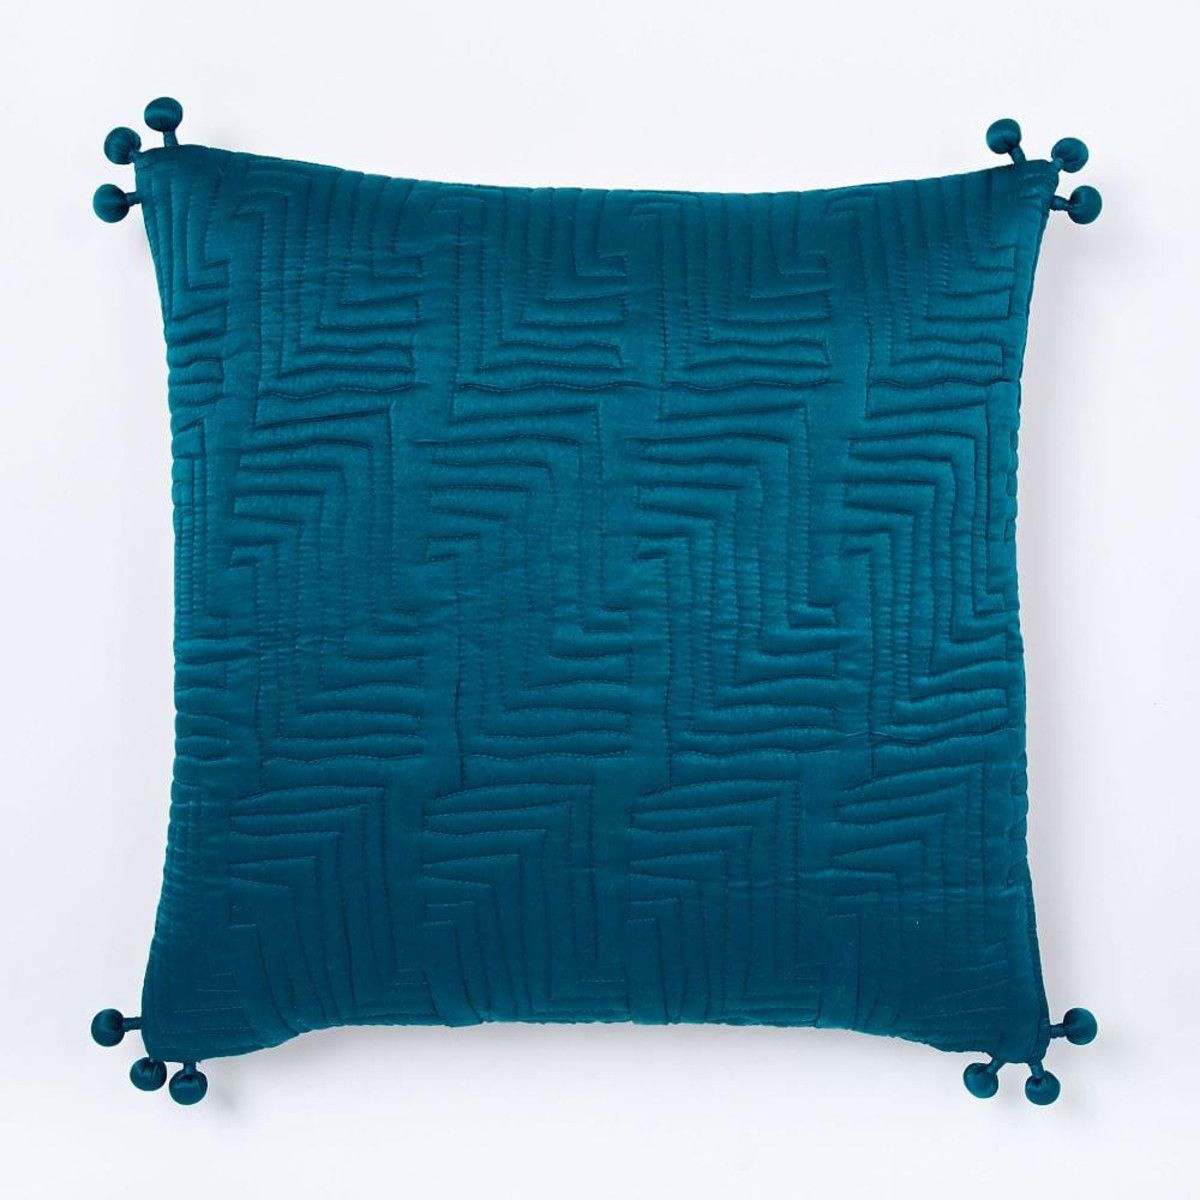 Washed Silk Quilted Cushion Cover - Blue Teal